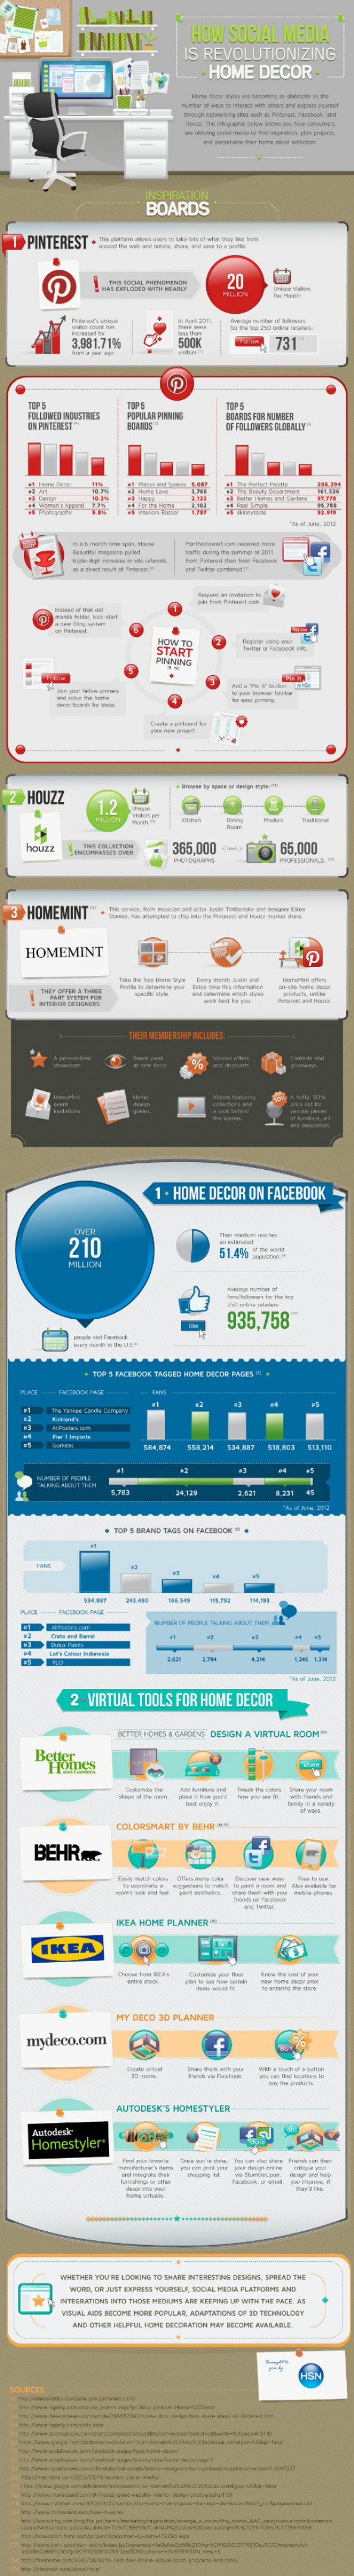 Social Media Has Revolutionized Home Decorating Infographic